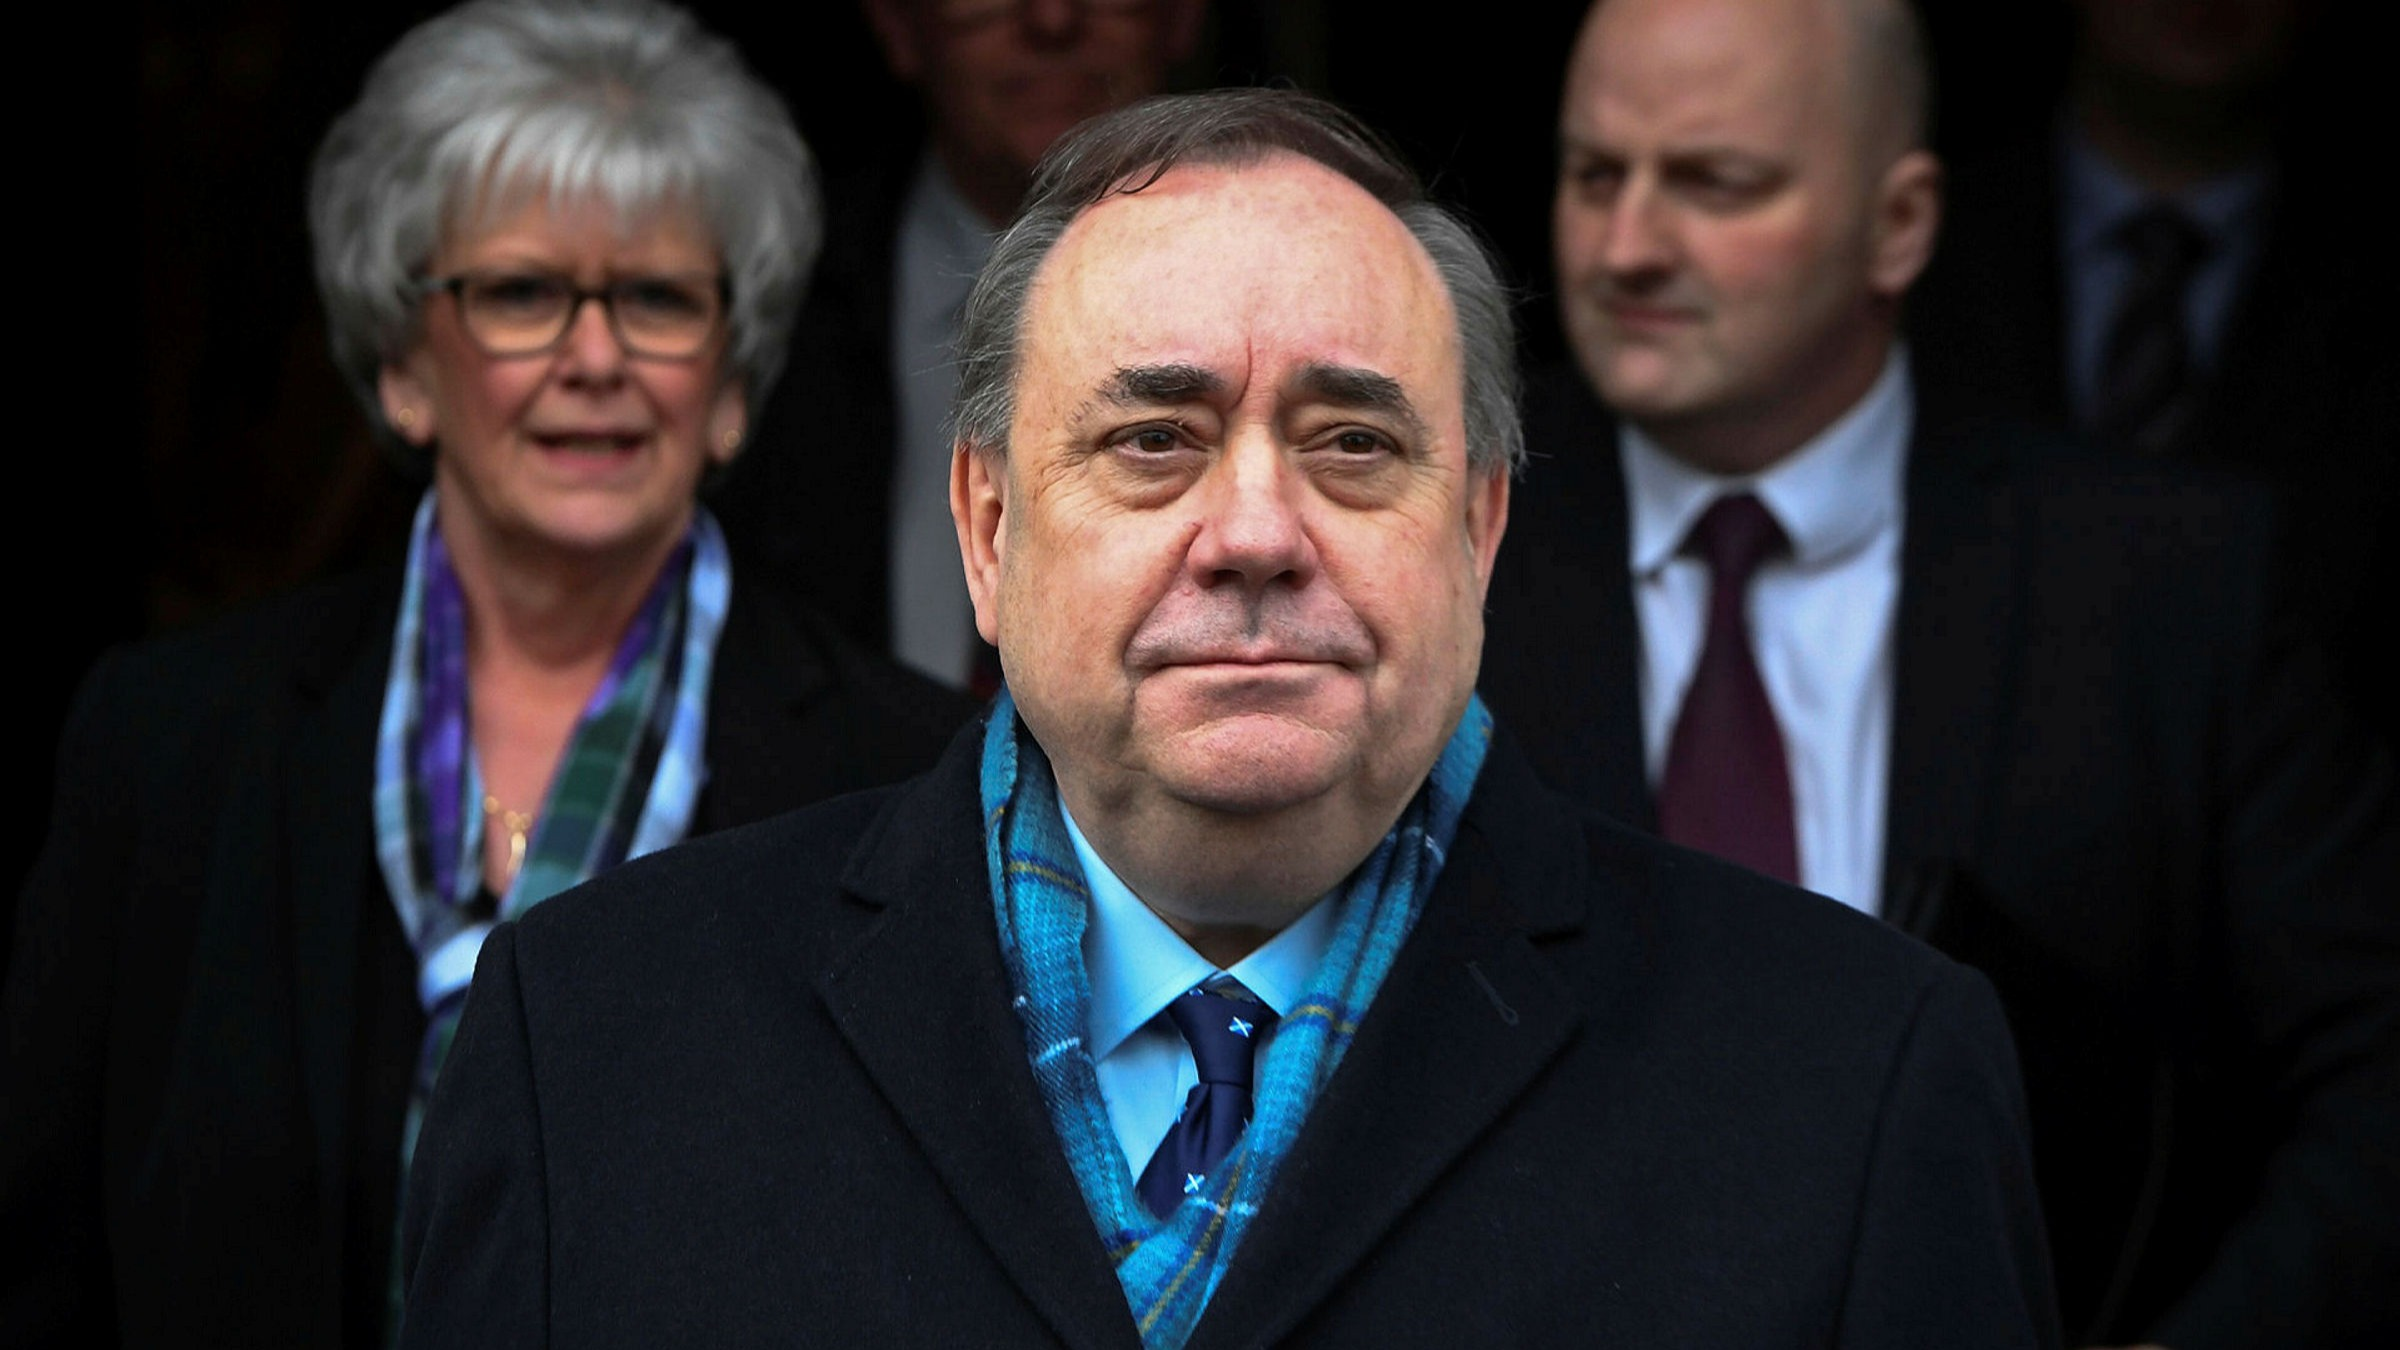 Sturgeon faces calls to resign over handling of Salmond probe | Financial Times